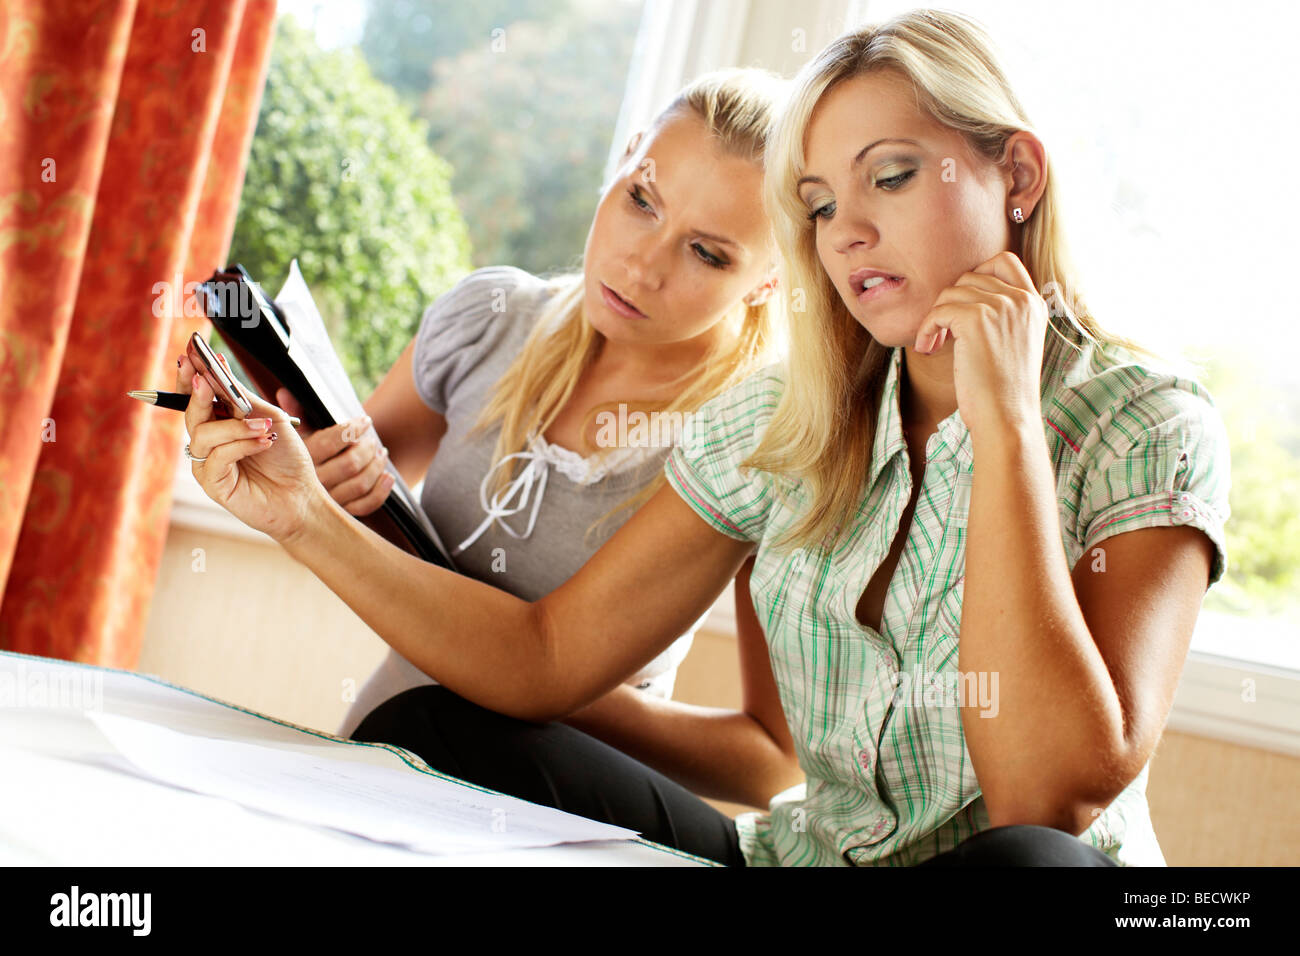 2 girls working out finances - Stock Image